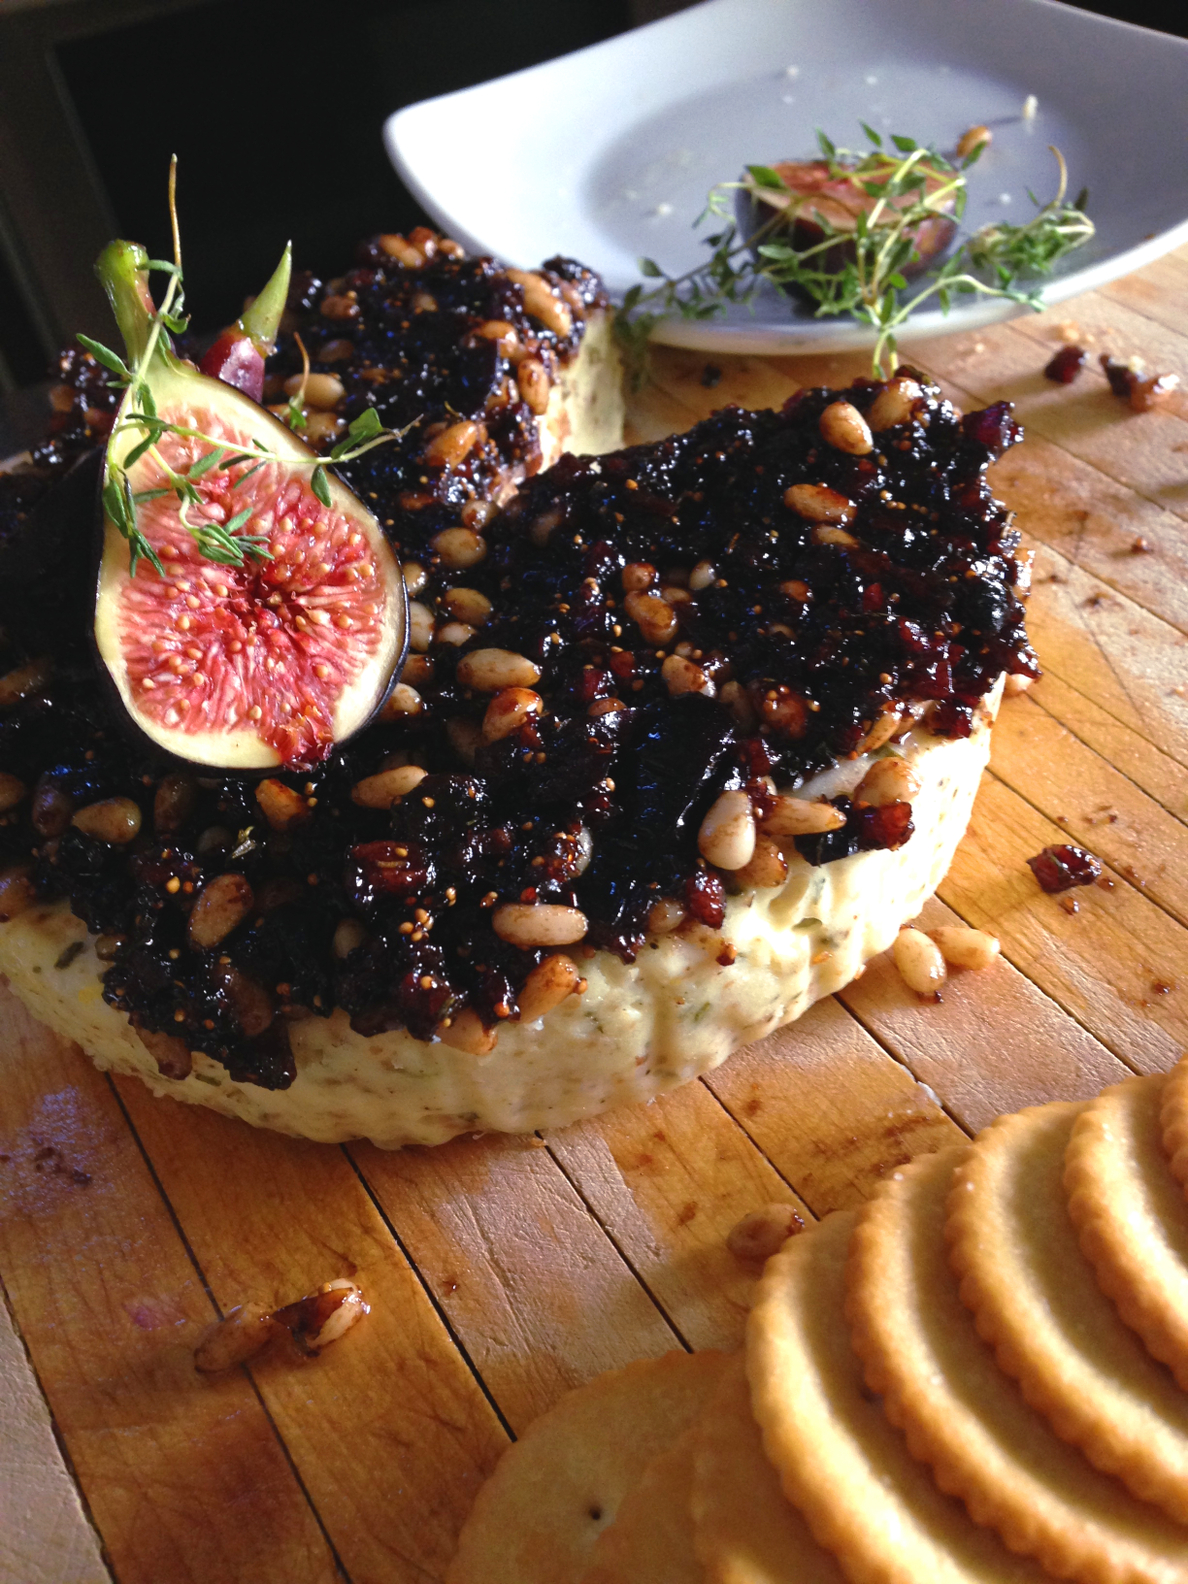 SAVORY PANCETTA AND FIG CHEESECAKE